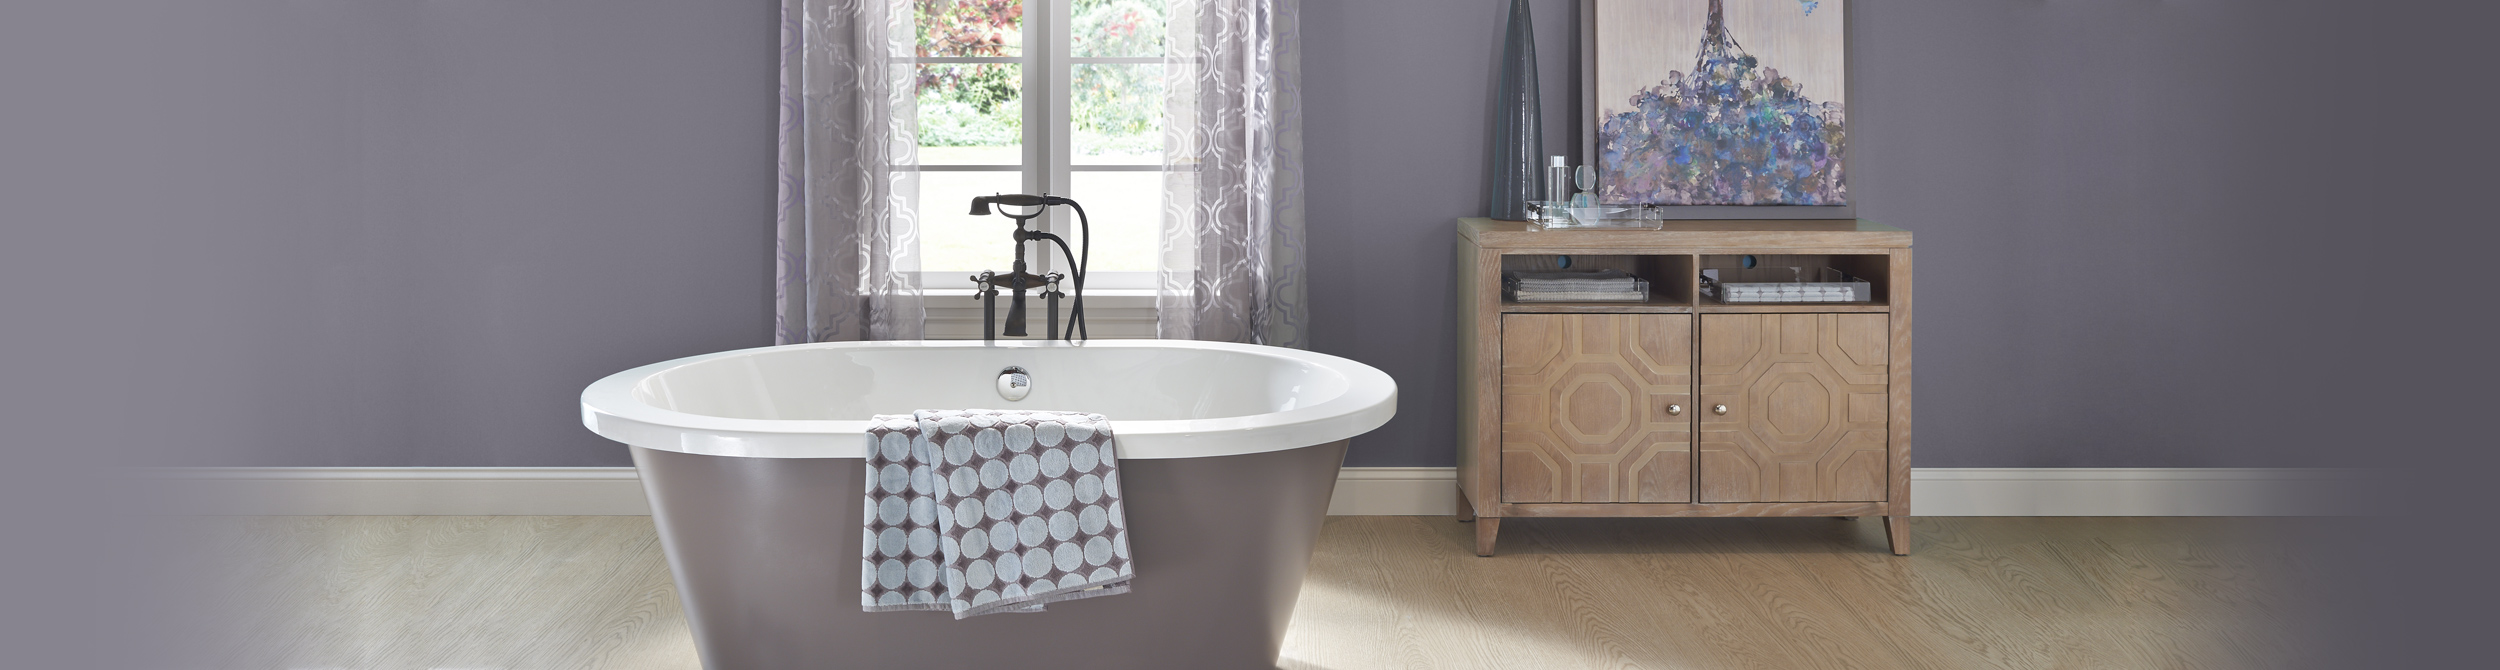 Inspirational bathroom image with dark purple and light purple split walls and white trim.